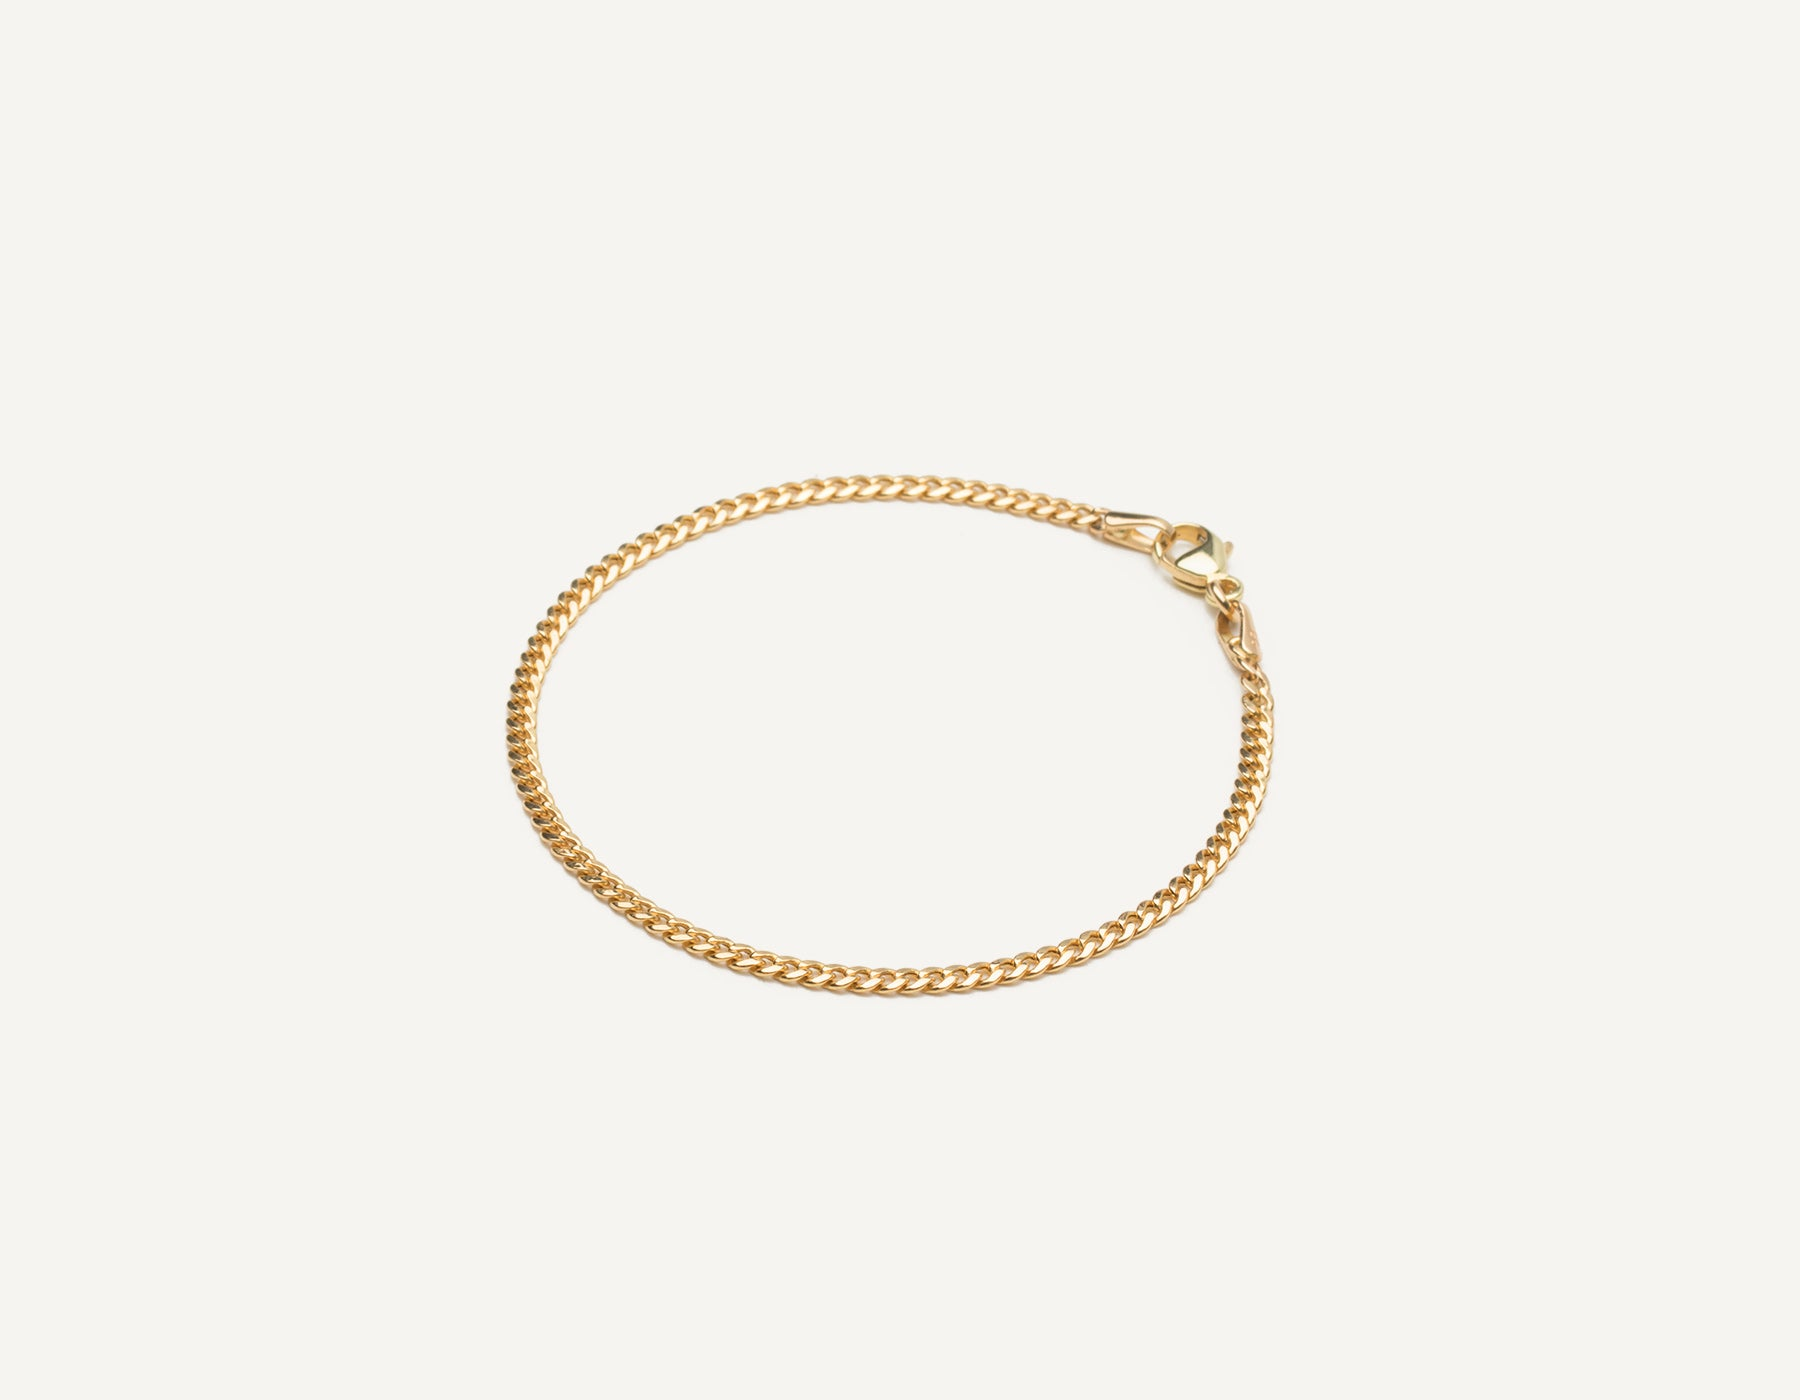 Vrai & Oro 14k solid gold modern minimalist Cuban Link bracelet with lobster clasp, 14K Yellow Gold